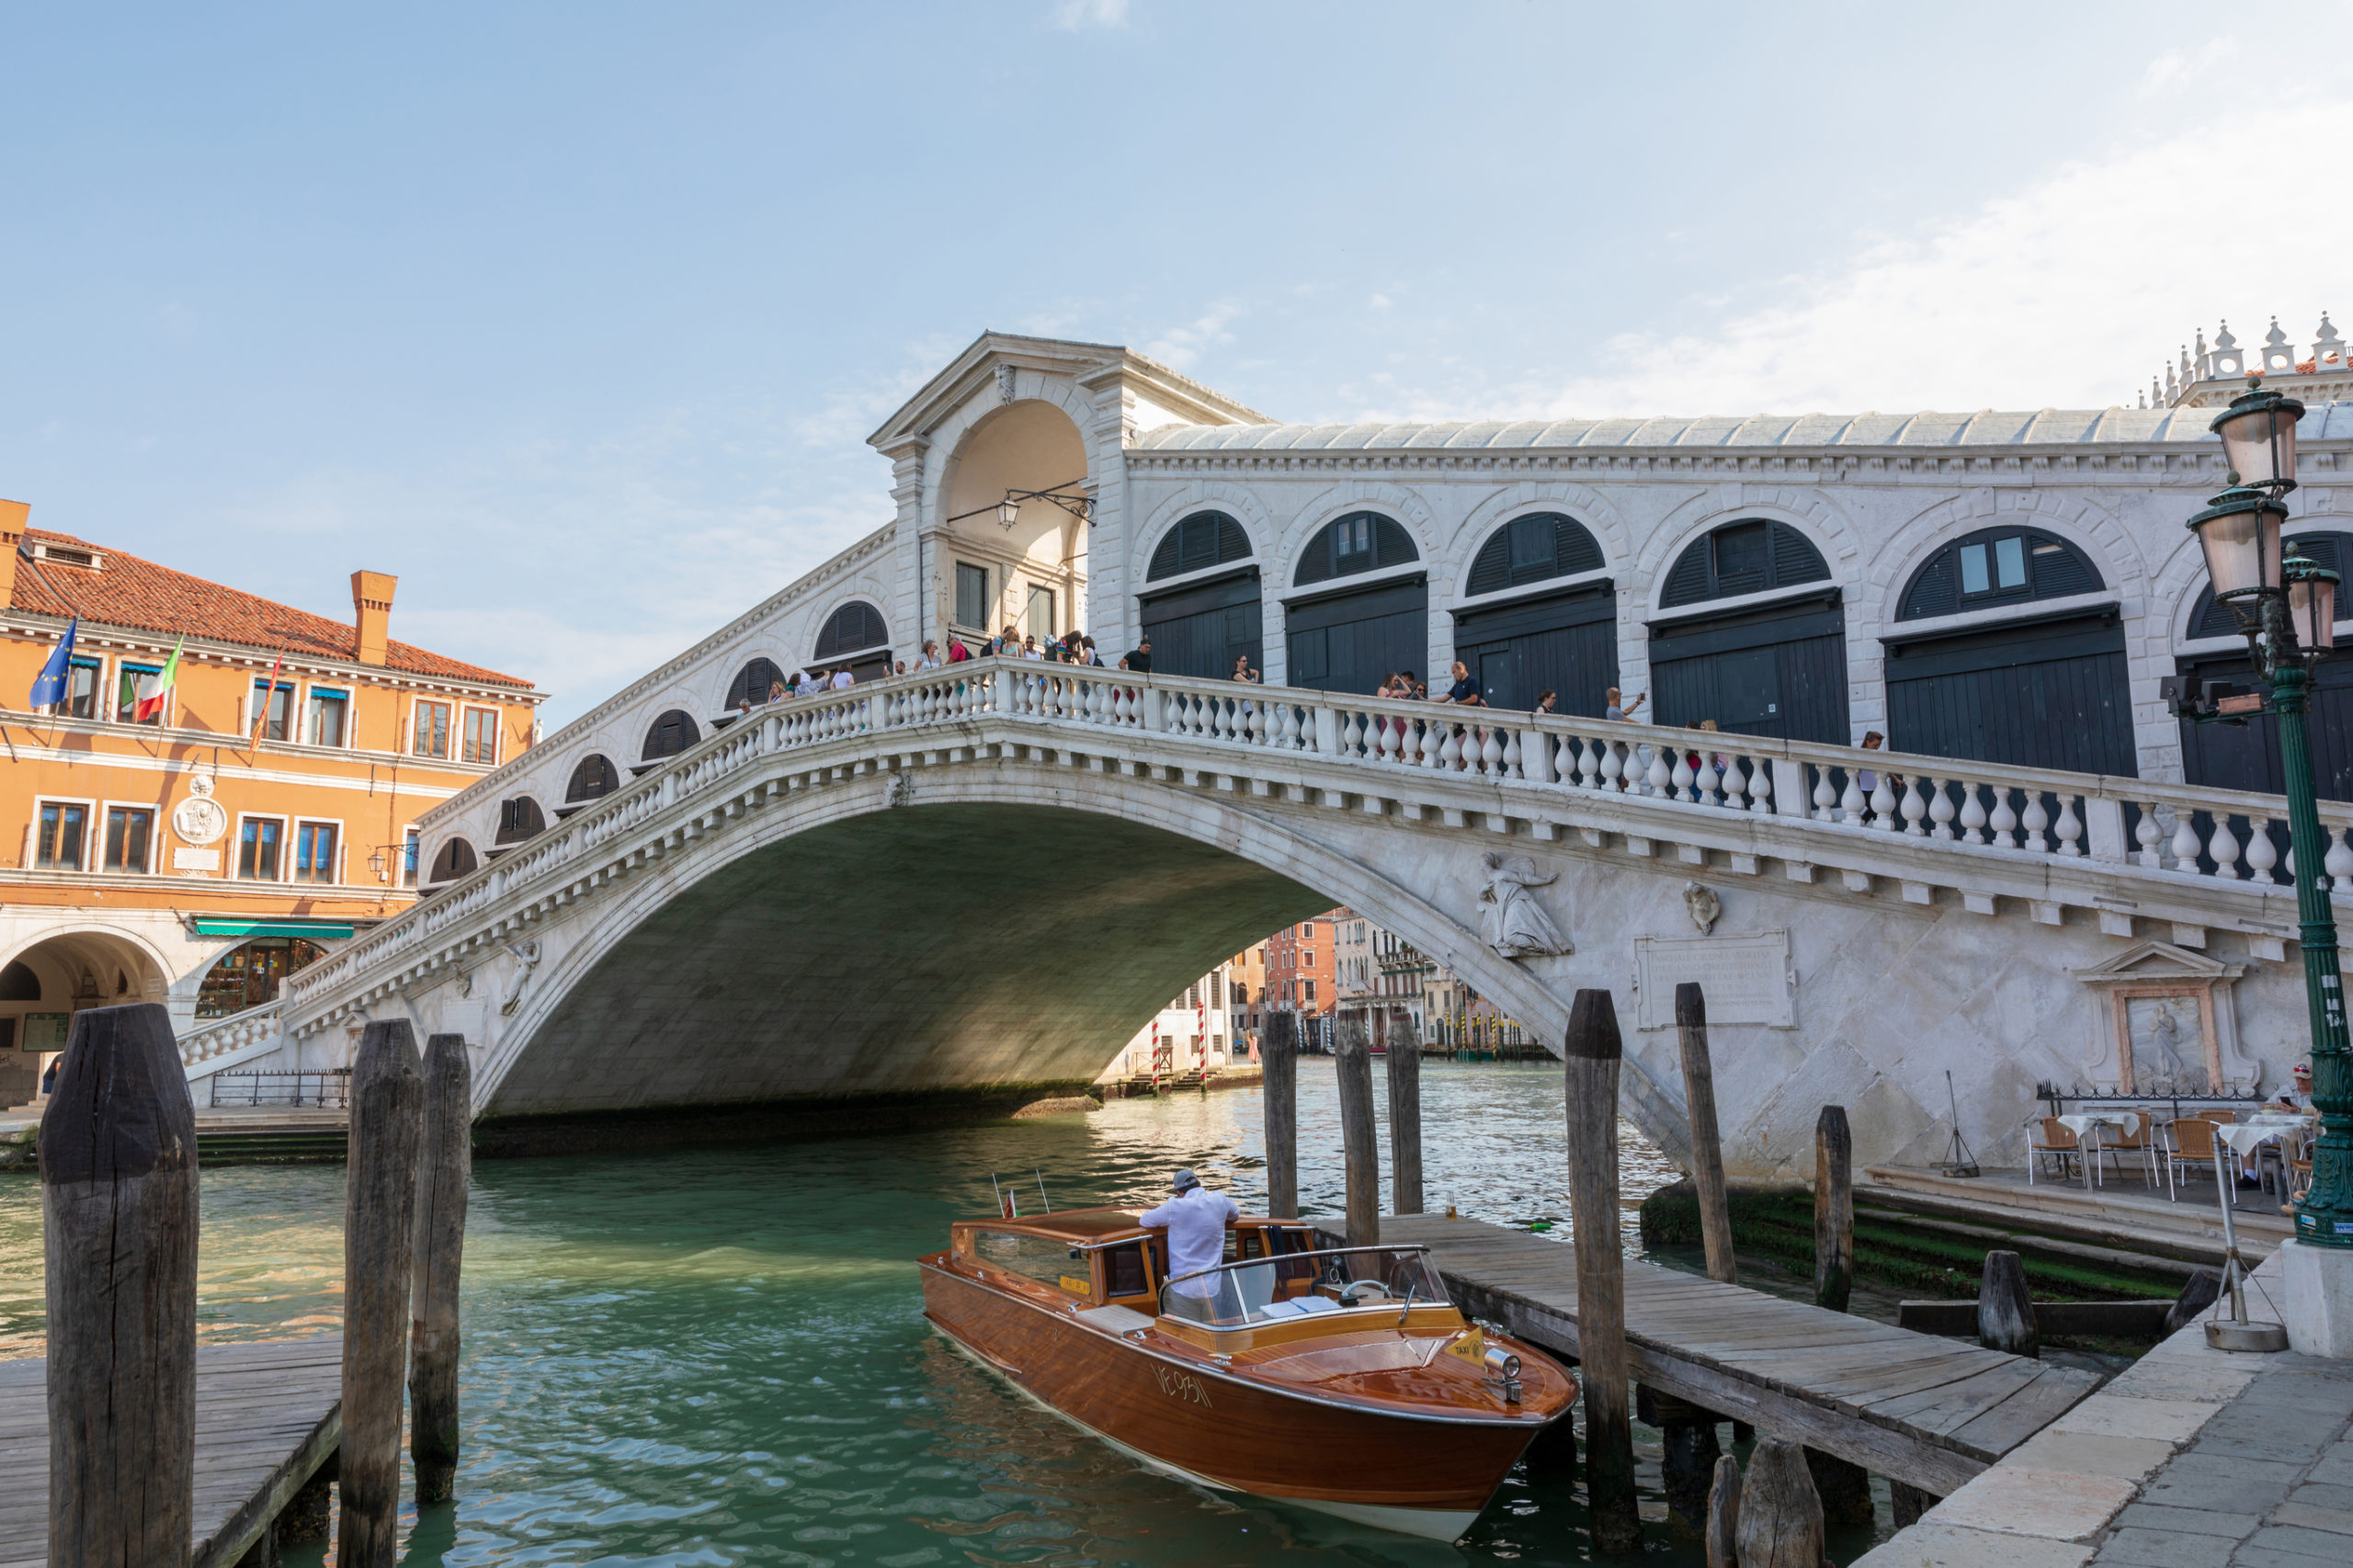 Venice, Italy - July 1, 2018: Panoramic view of Rialto Bridge (Ponte di Rialto) is the oldest of the four bridges spanning the Grand Canal in Venice. Landscape of summer sunny day and blue sky